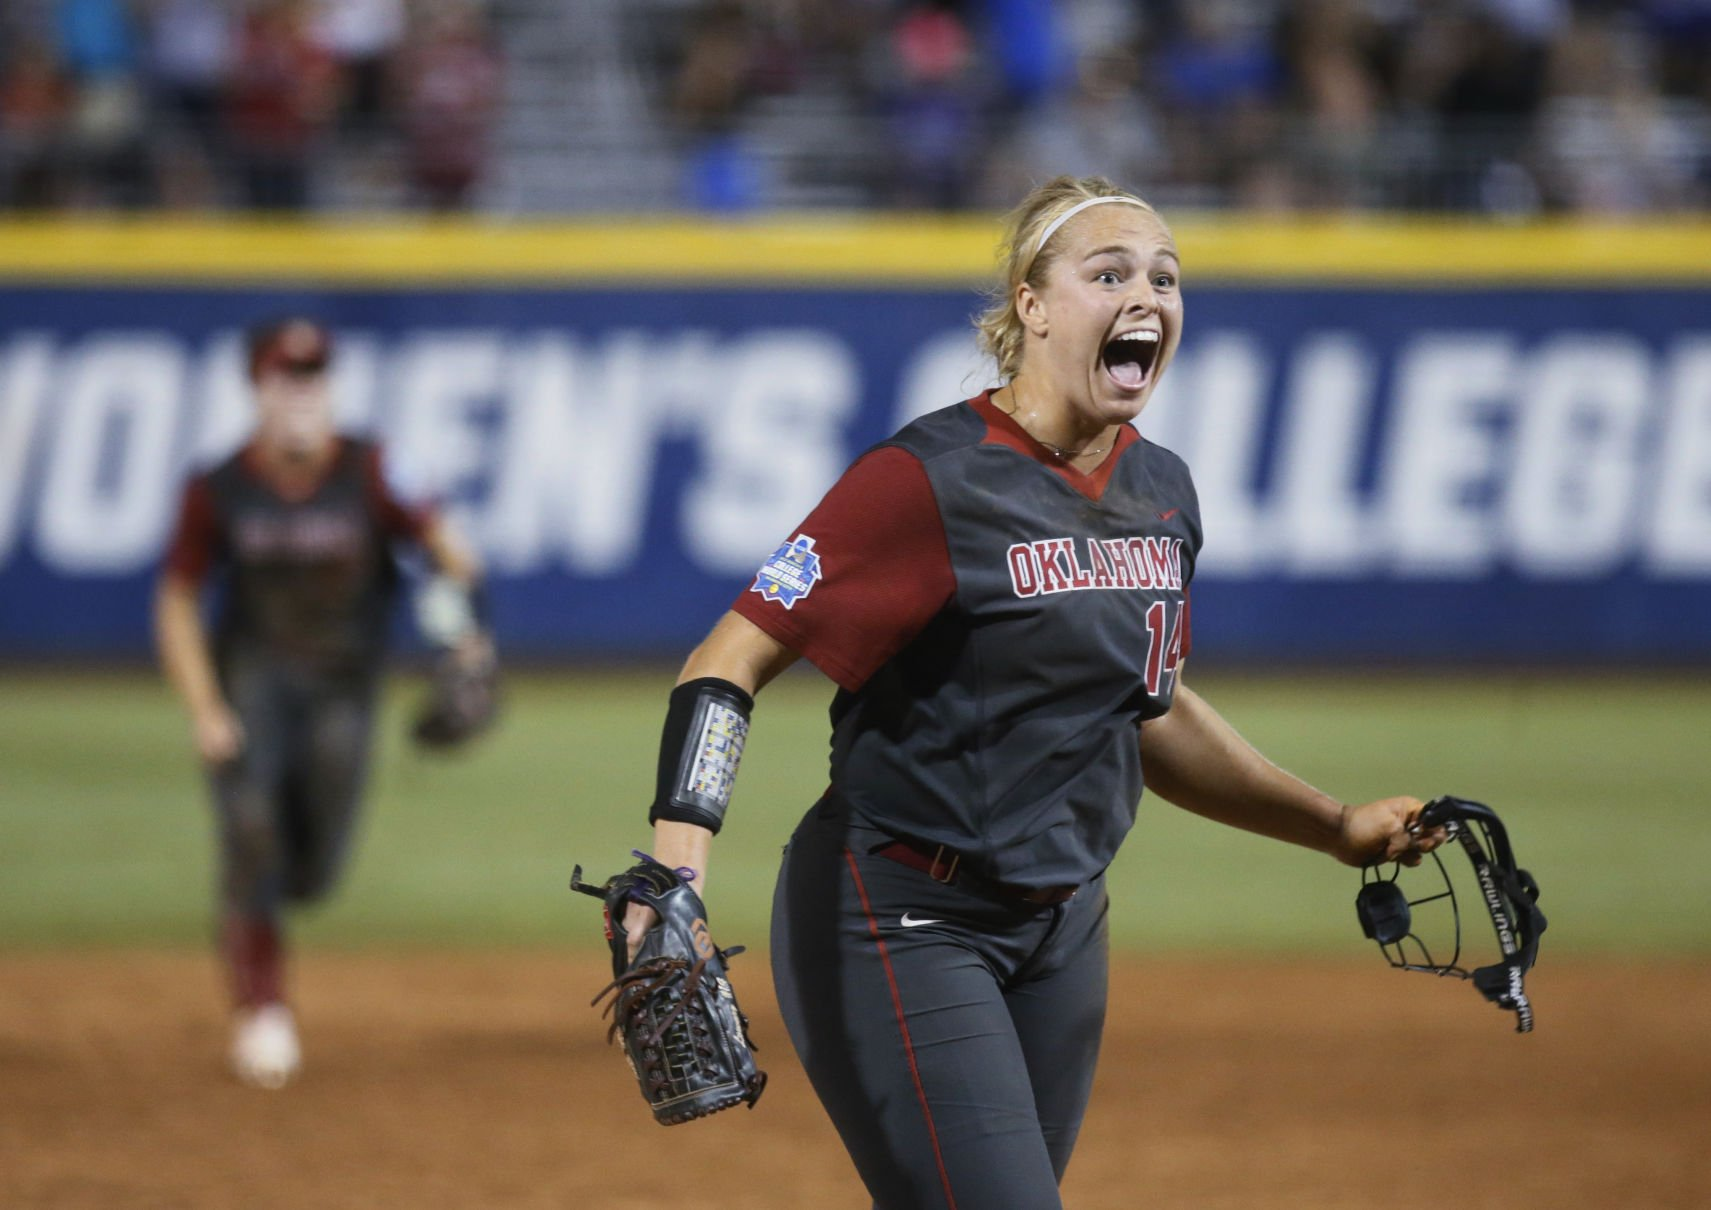 Kleist dominates in relief as Oregon tops Baylor 7-4 in WCWS